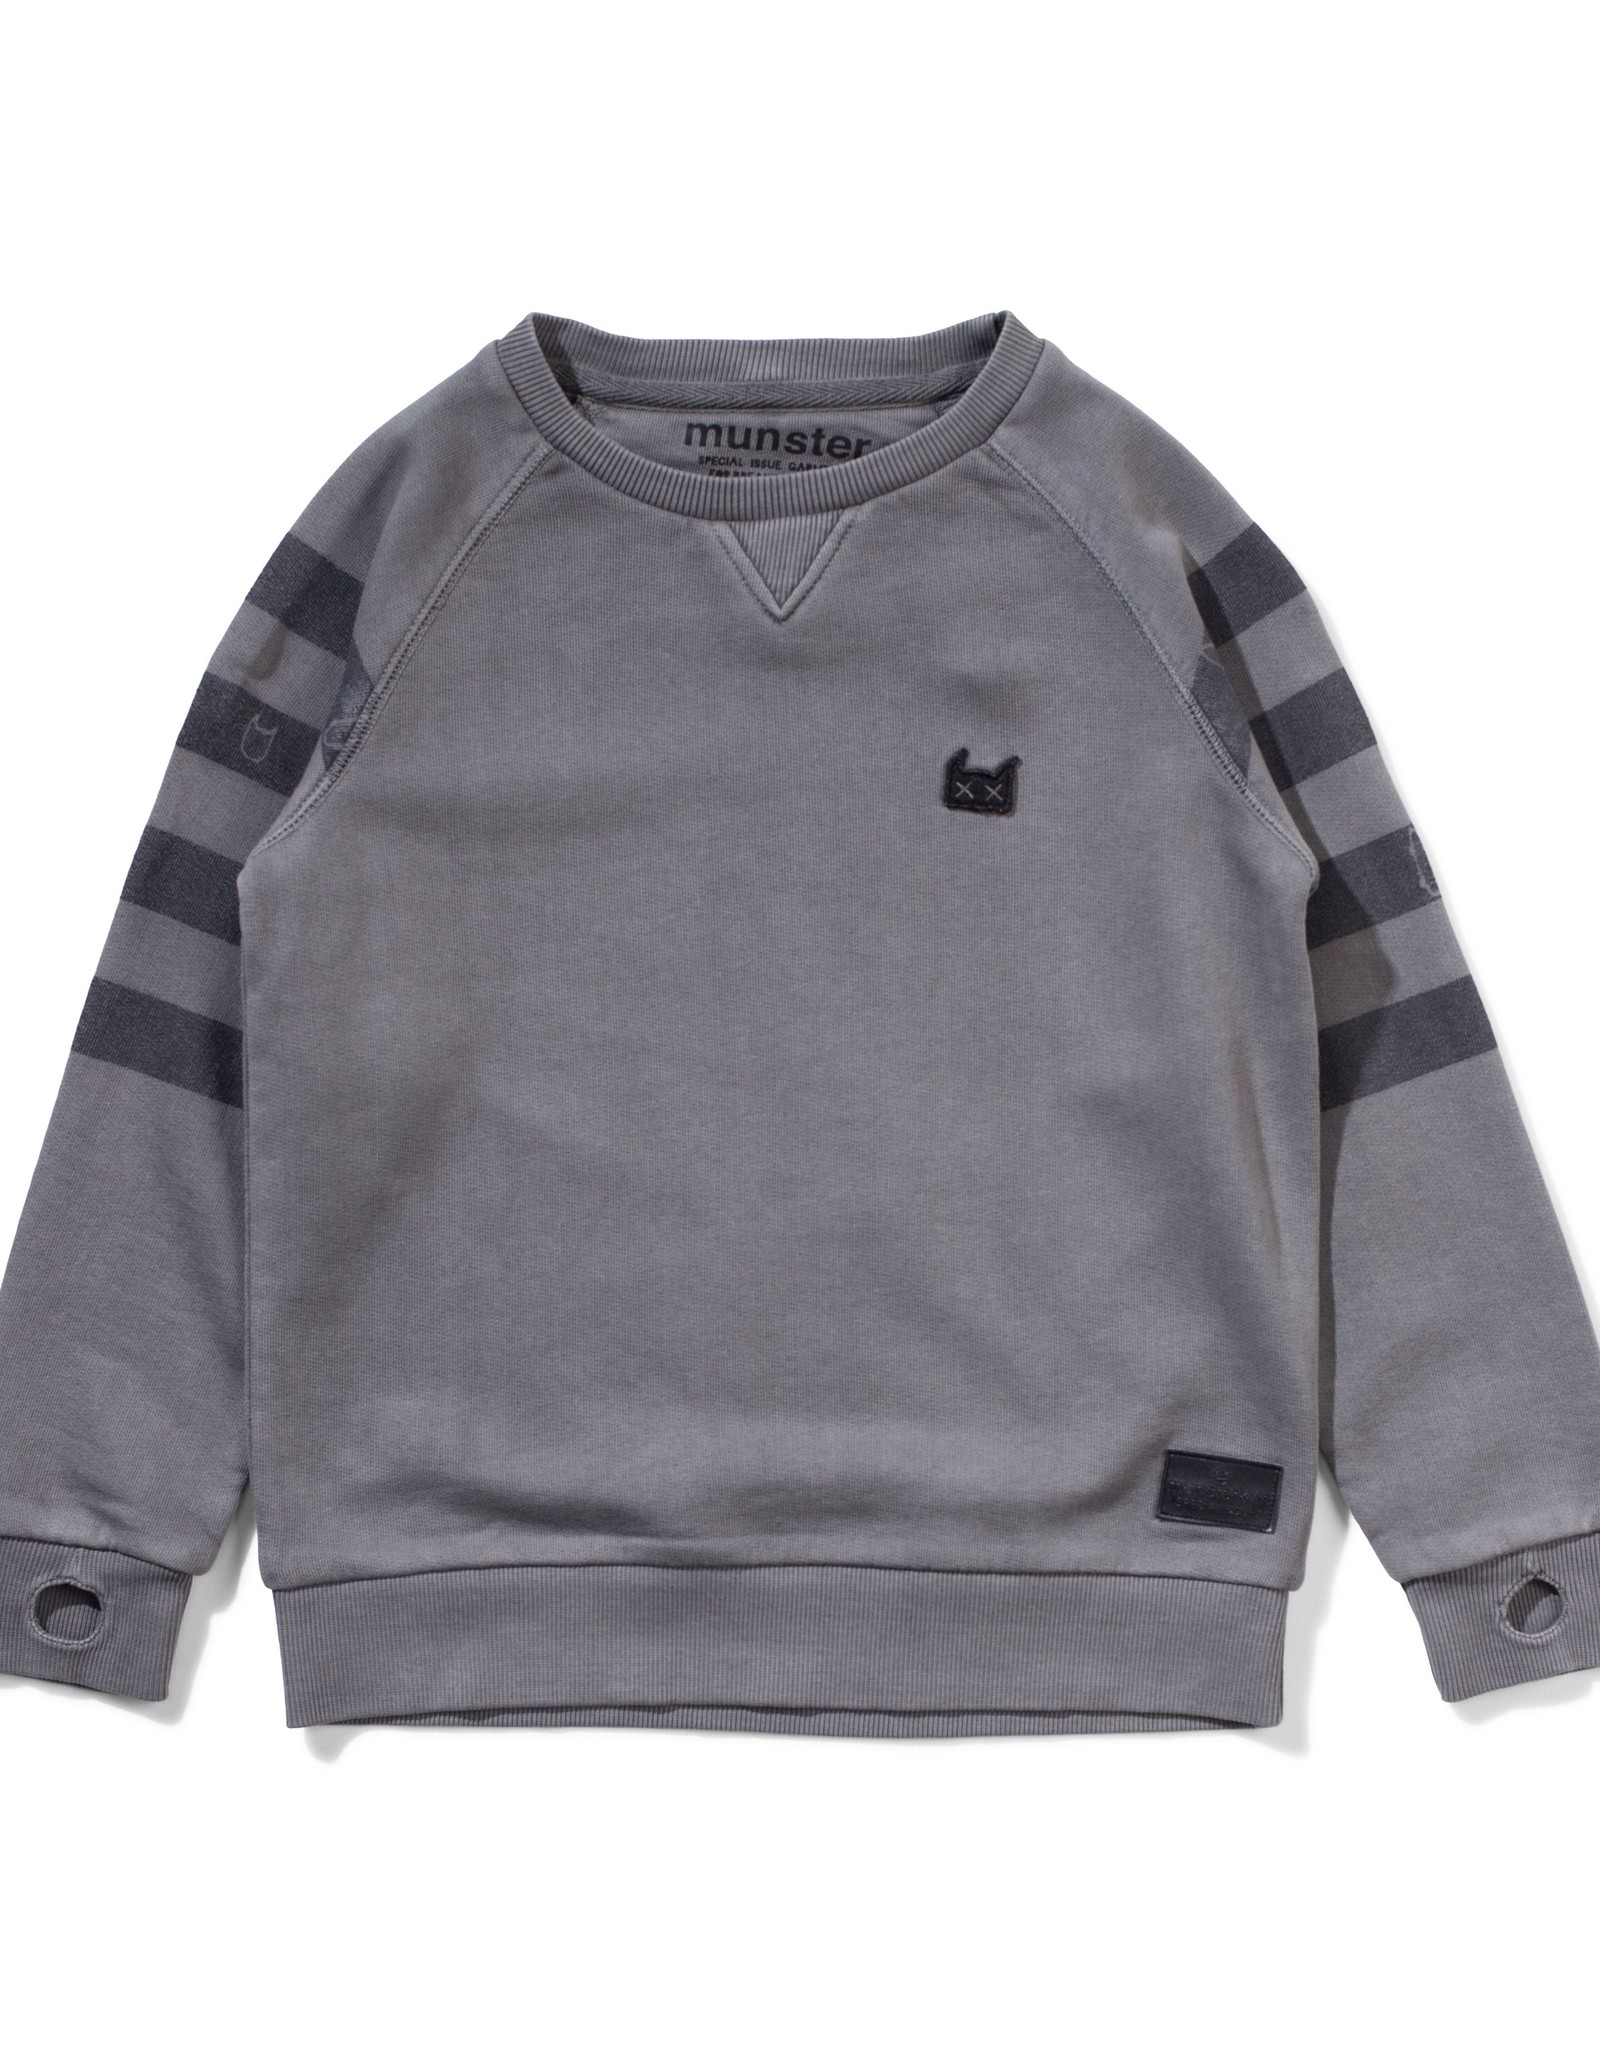 Munster Kids holiday crew- washed charcoal